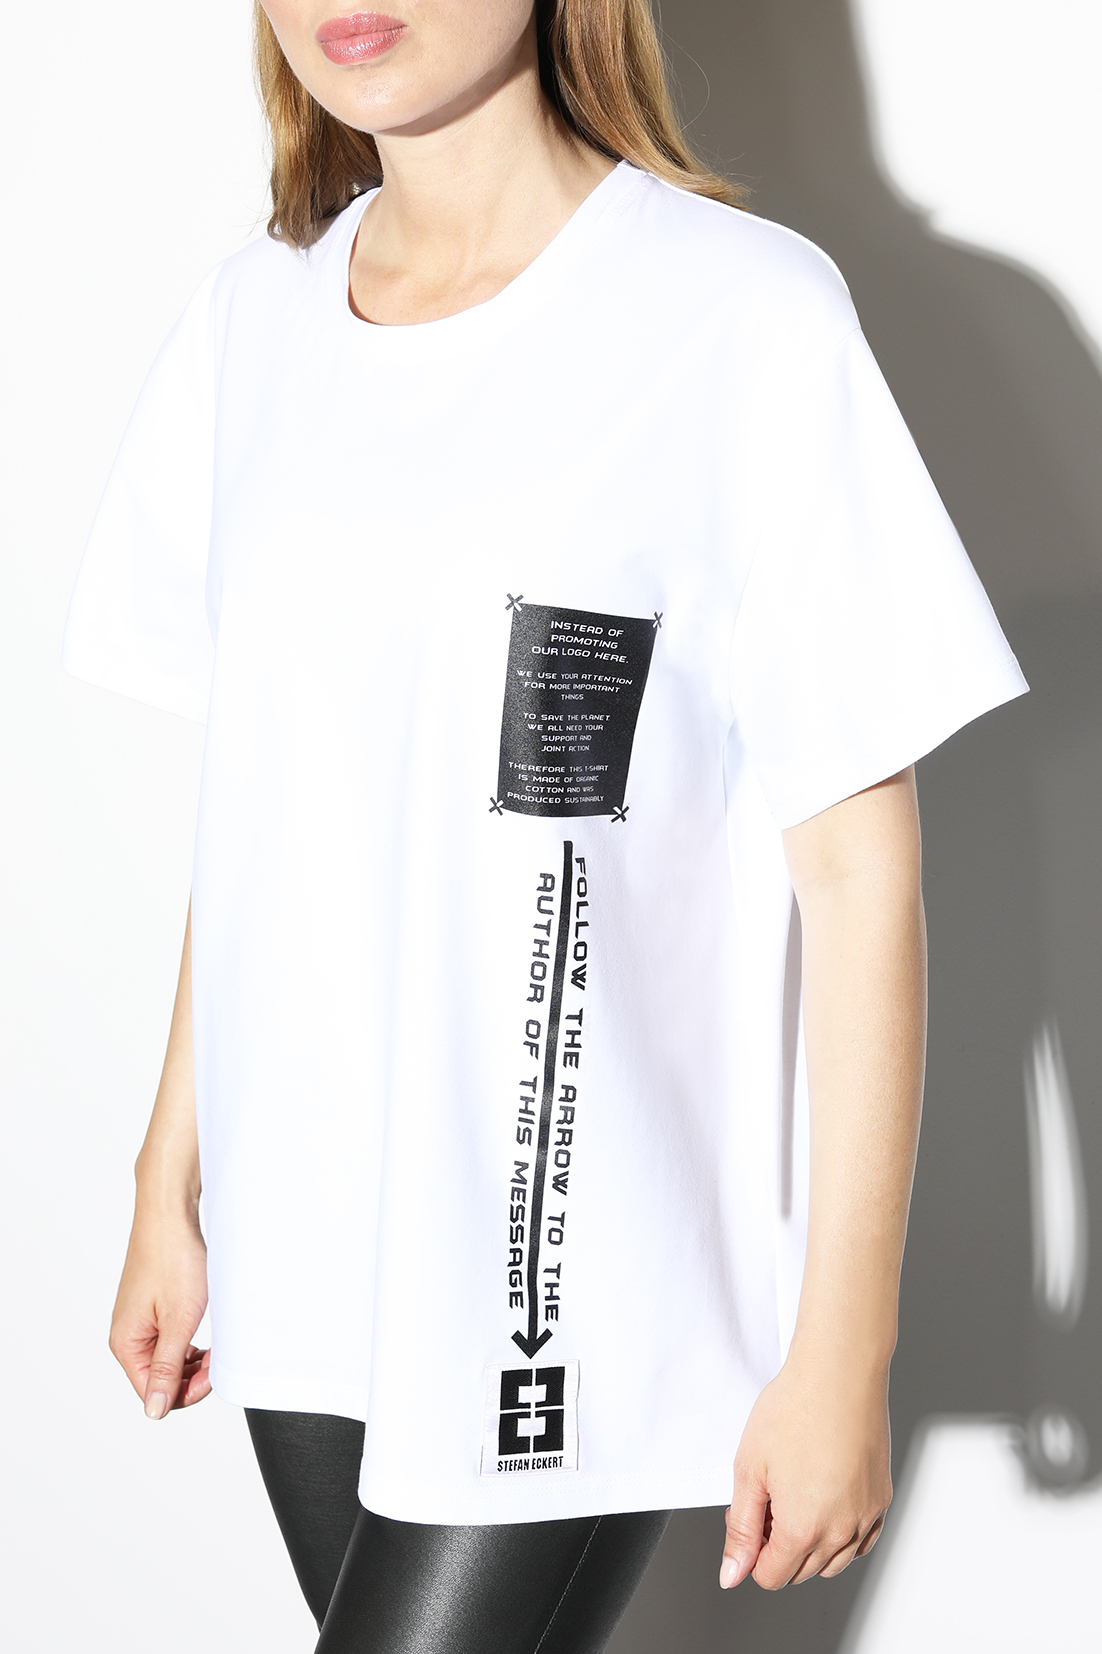 T-shirt-with-a-sustainability-statement,-made-sustainably-from-organic-cotton,-by-designer-Stefan-Eckert.--1